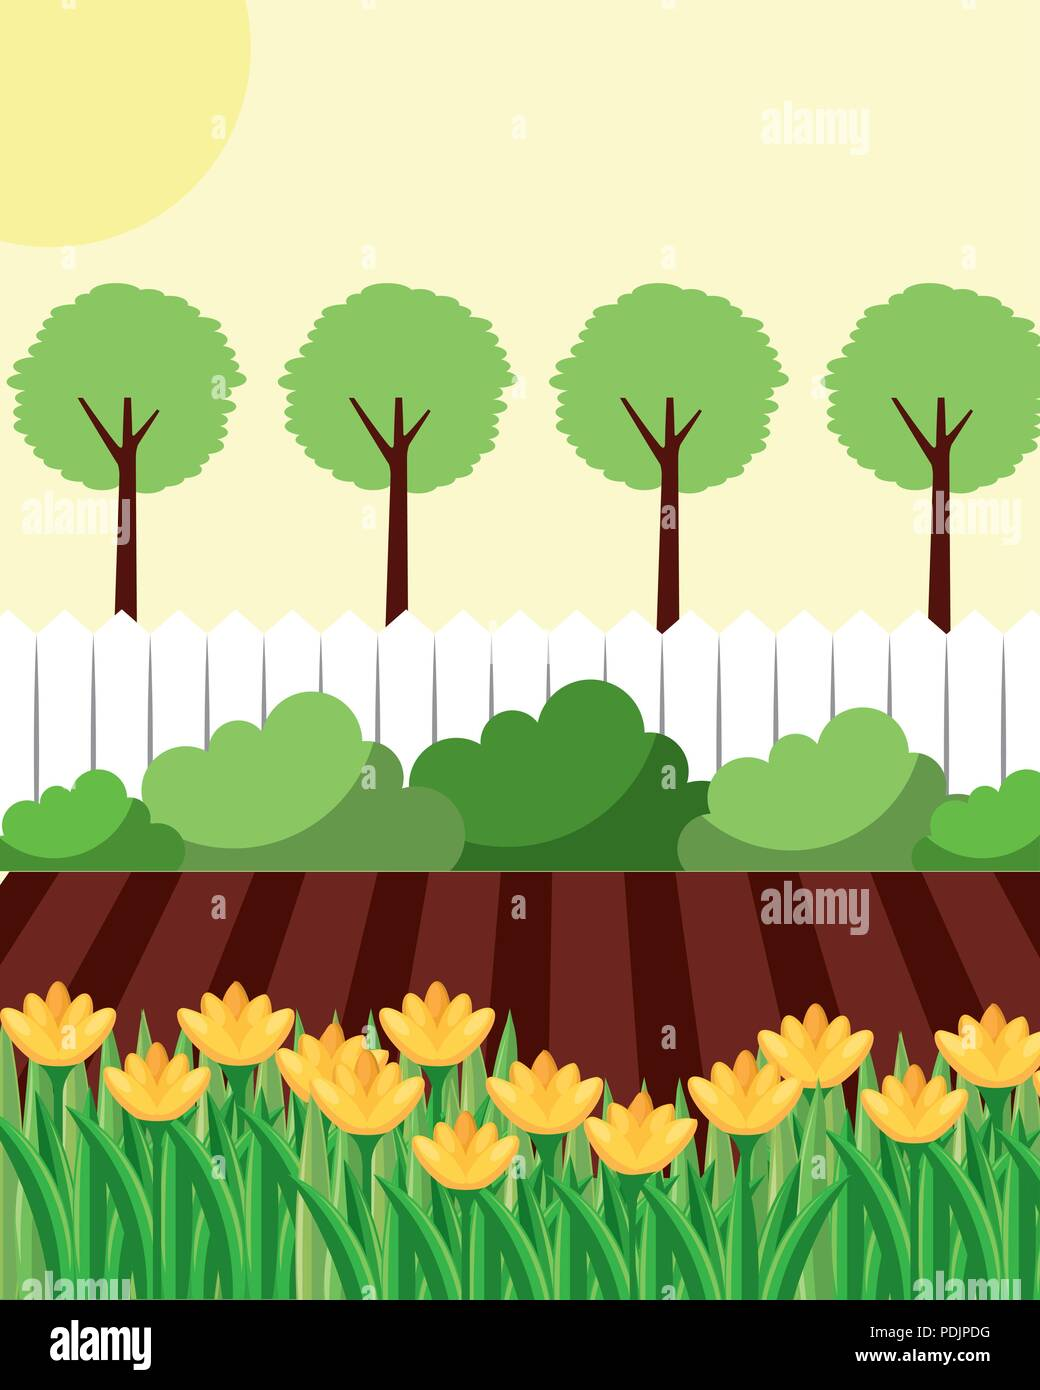 hight resolution of backyard with flowers garden fence and trees stock vector